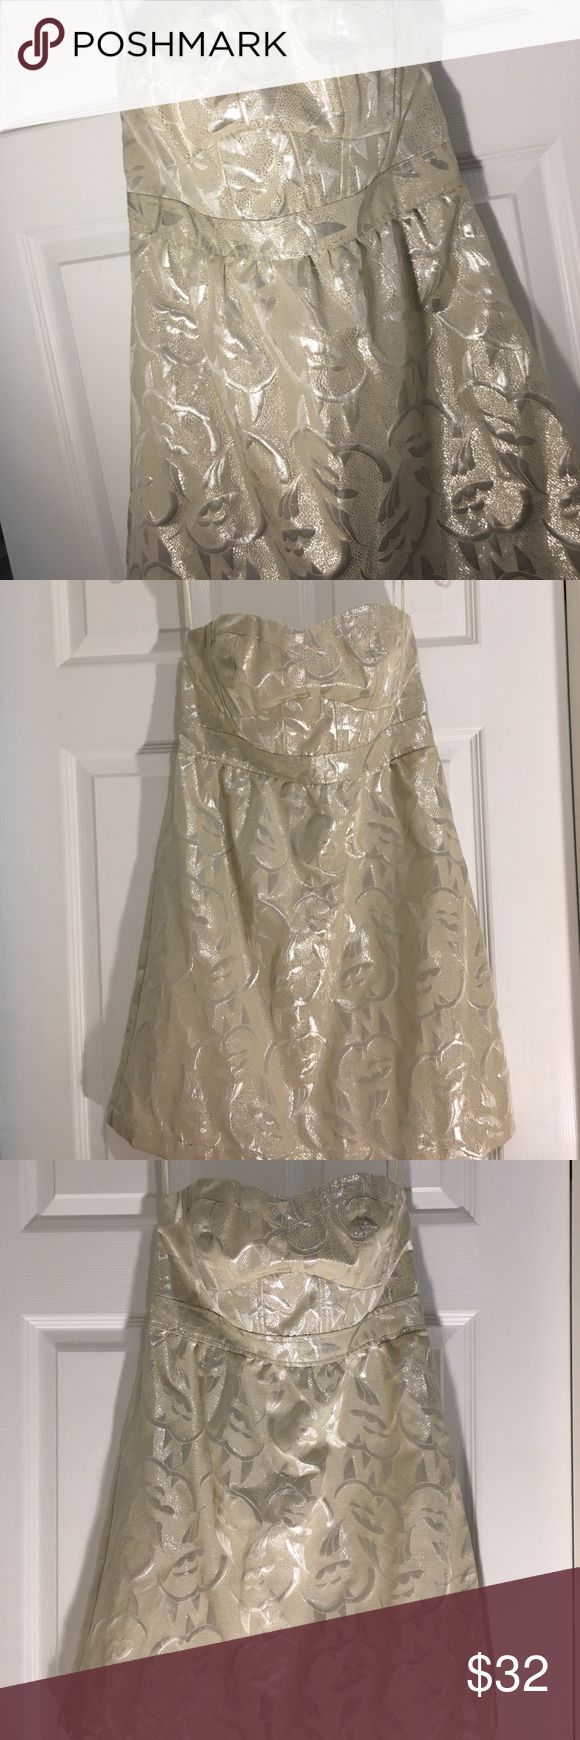 NWT⭐️Gorgeous⭐️ Strapless Shiny Cream Dress Size 4 NWT Gorgeous American Eagle Outfitters Cream Shiny Strapless Dress size 4. This dress is so much prettier than the photos can show. It has metallic thread design in it , would be stunning with silver strappy sandals or silver pumps ! Lined , zips up the side , with some elastic at top of bust which is great ! You could get married in this dress if you are in your 20's and in Vegas .....🌺 No snags , flaws or imperfections 👌 American Eagle…